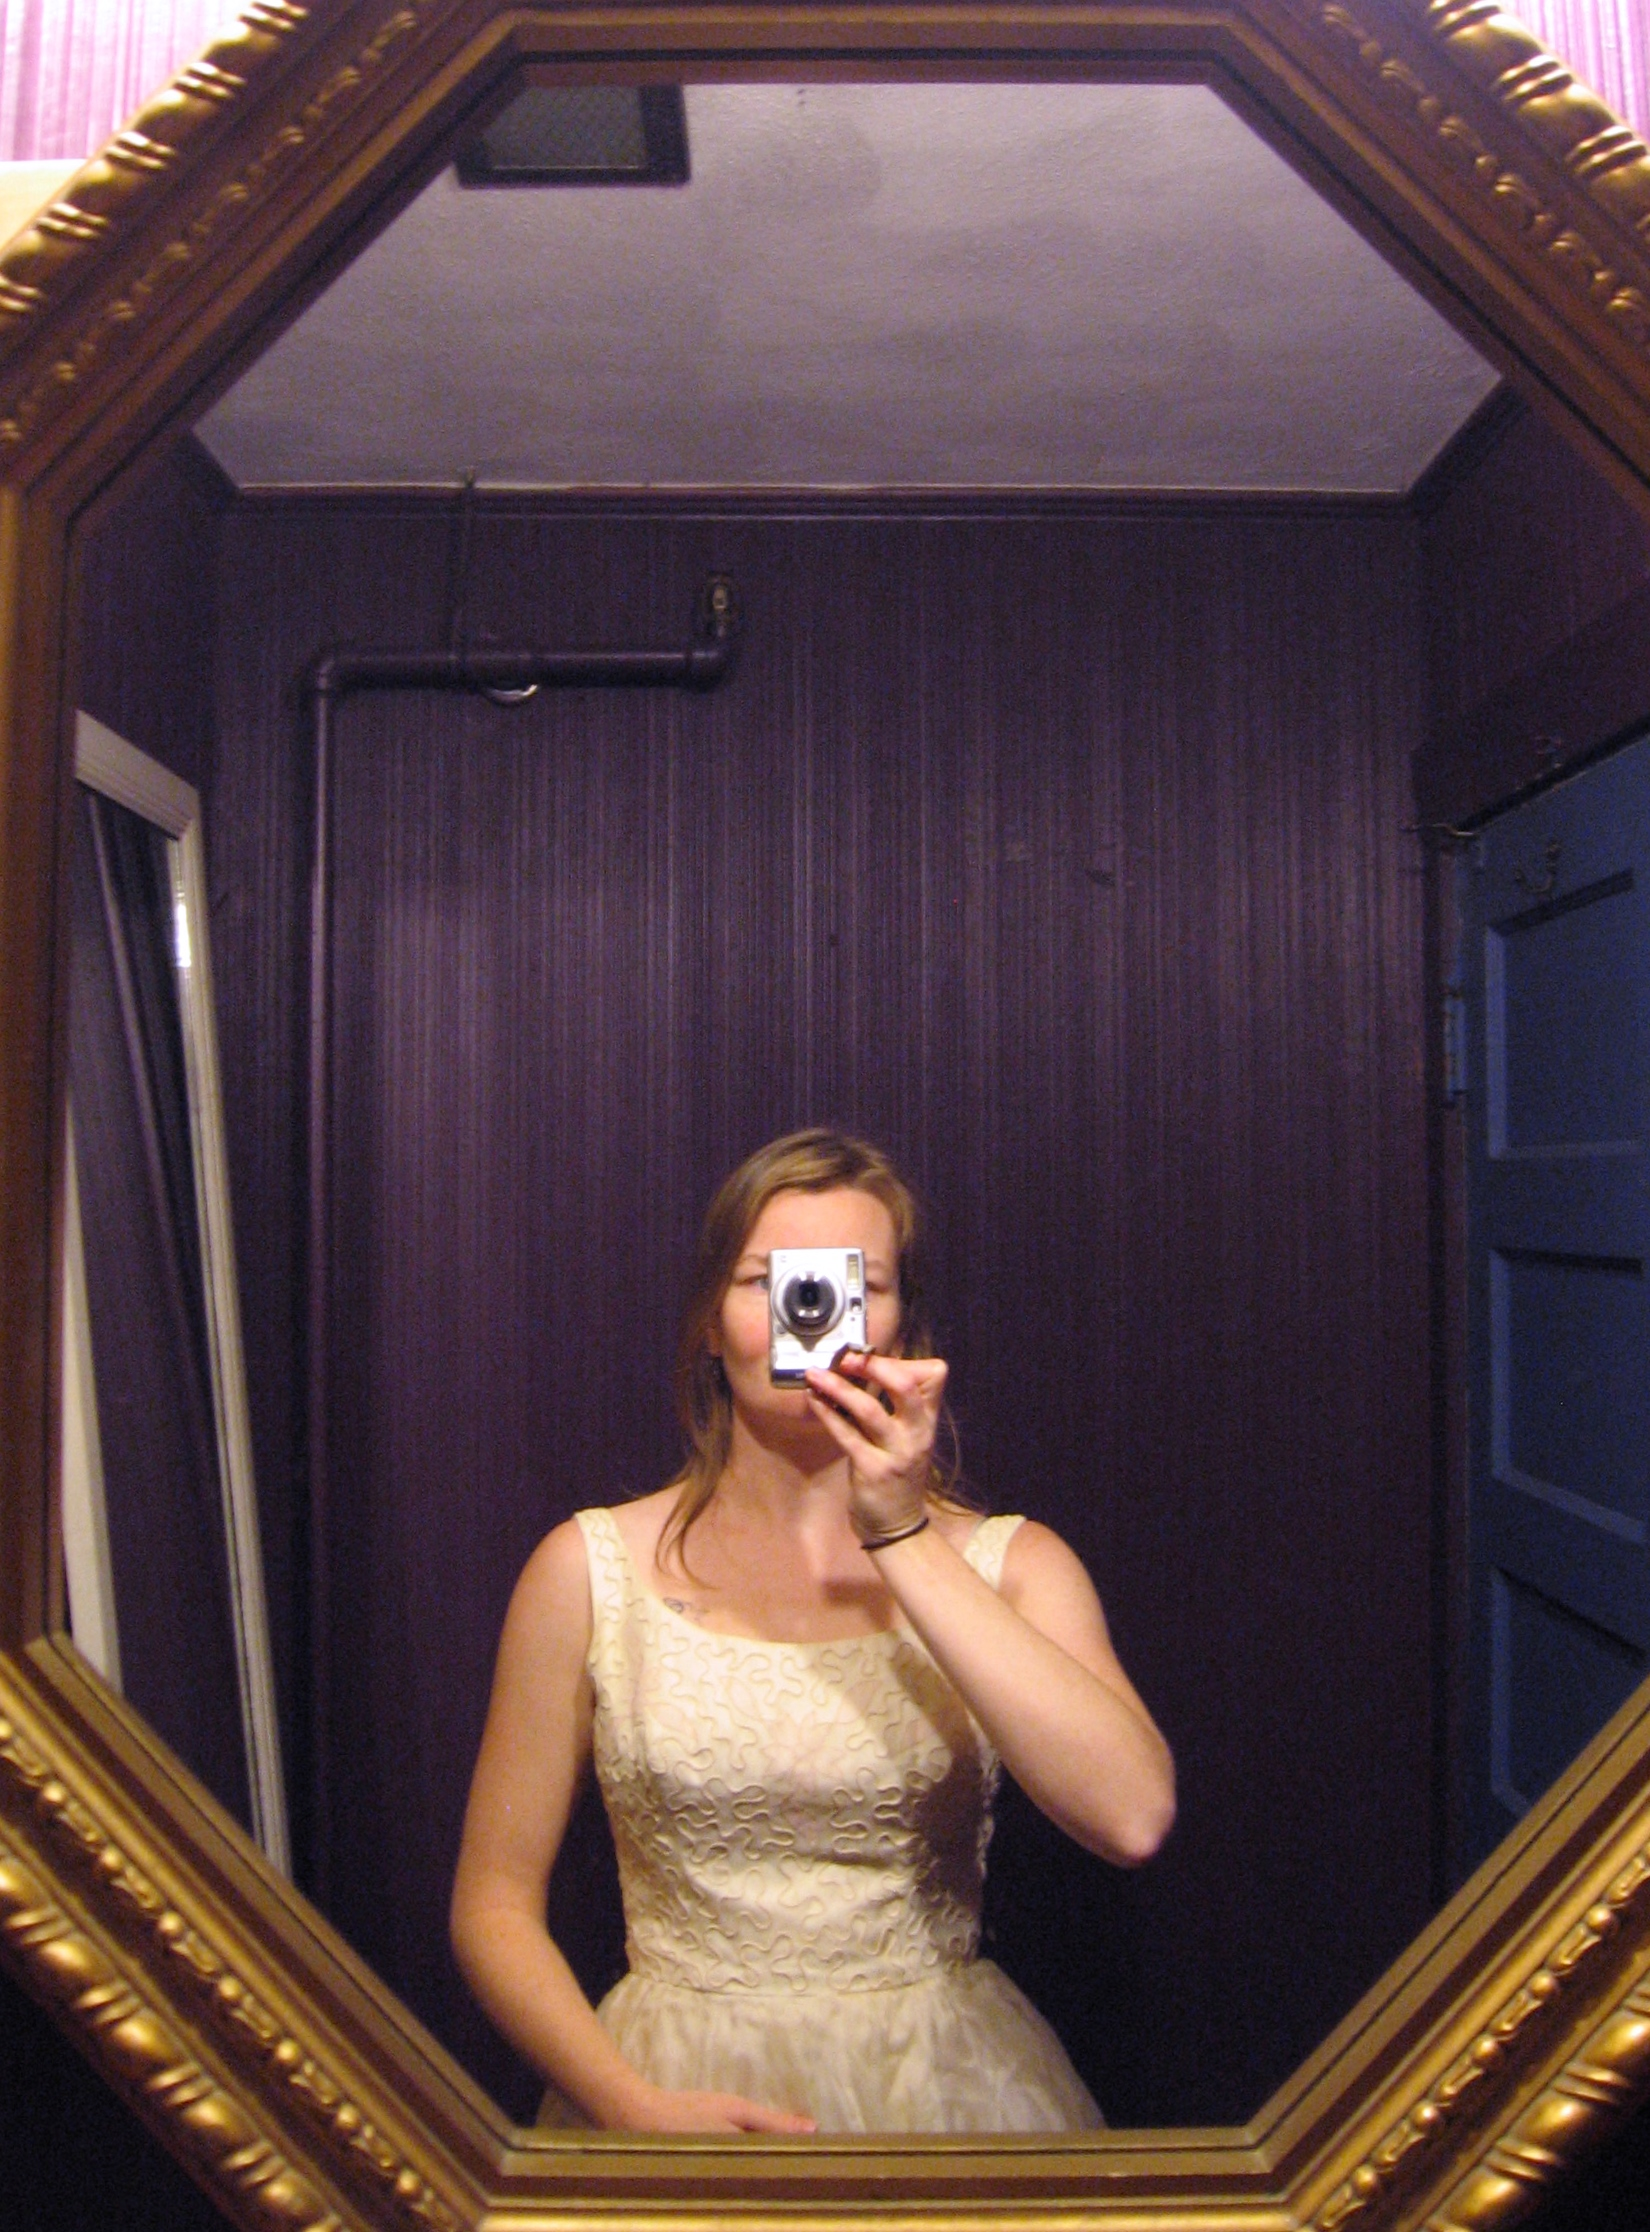 2013-09-21-thedress.JPG